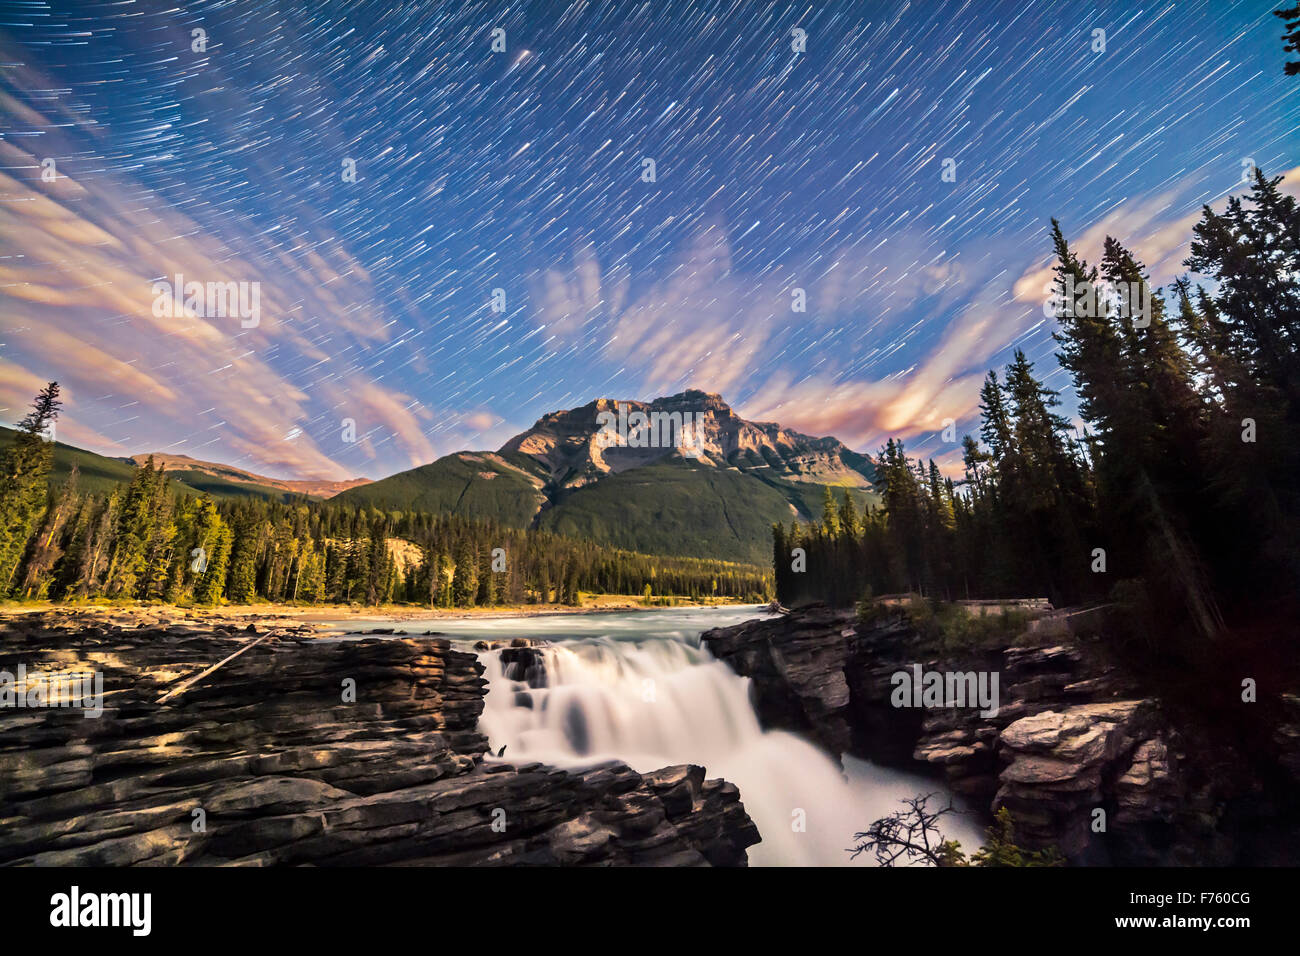 The stars of autumn rising over Mount Kerkeslin and Athabasca Falls in Jasper National Park, Alberta, on a night - Stock Image